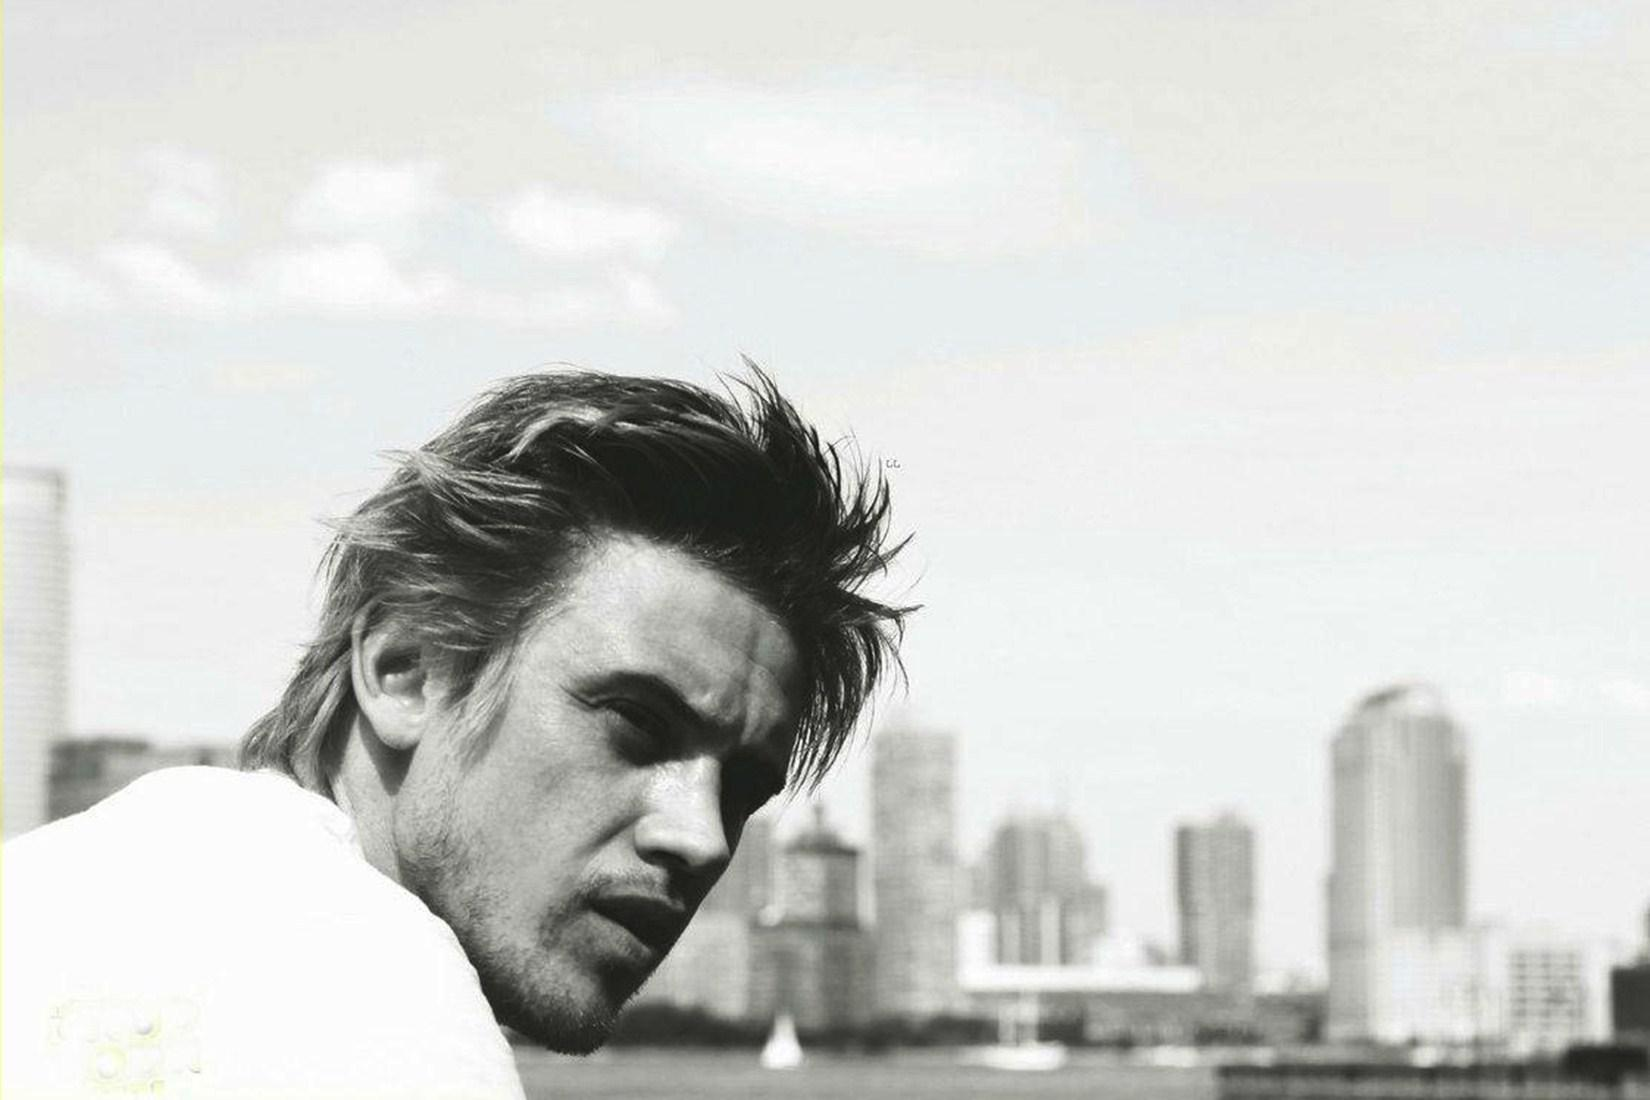 Cute Baby Ultra Hd Wallpapers Hd Boyd Holbrook Wallpaper Download Free 139732